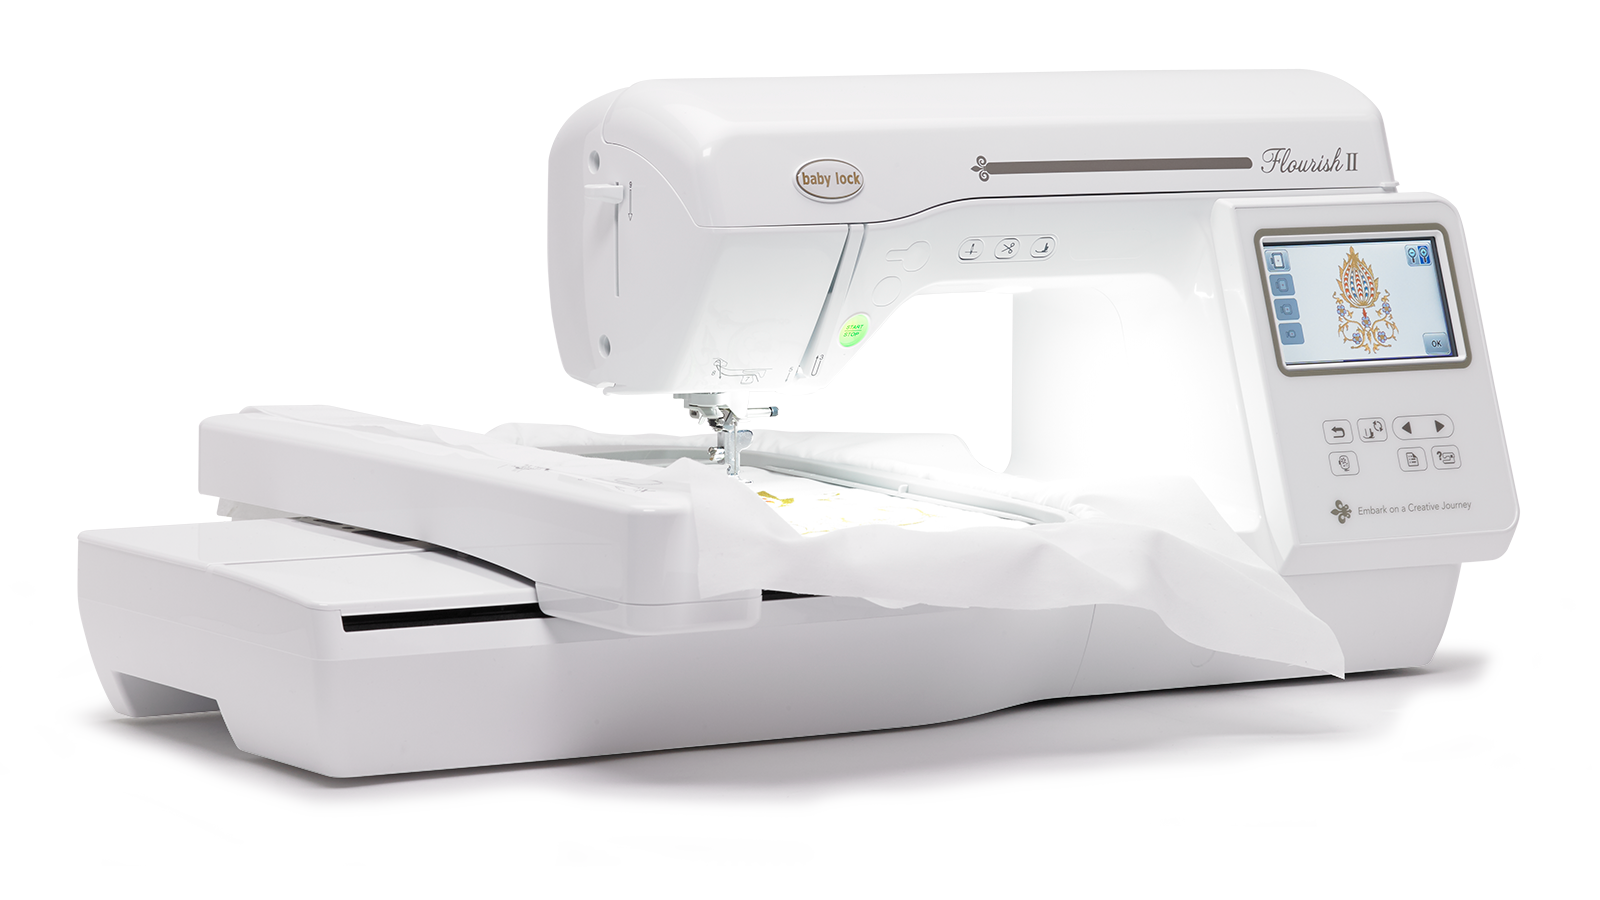 Babylock Flourish II Embroidery Machine